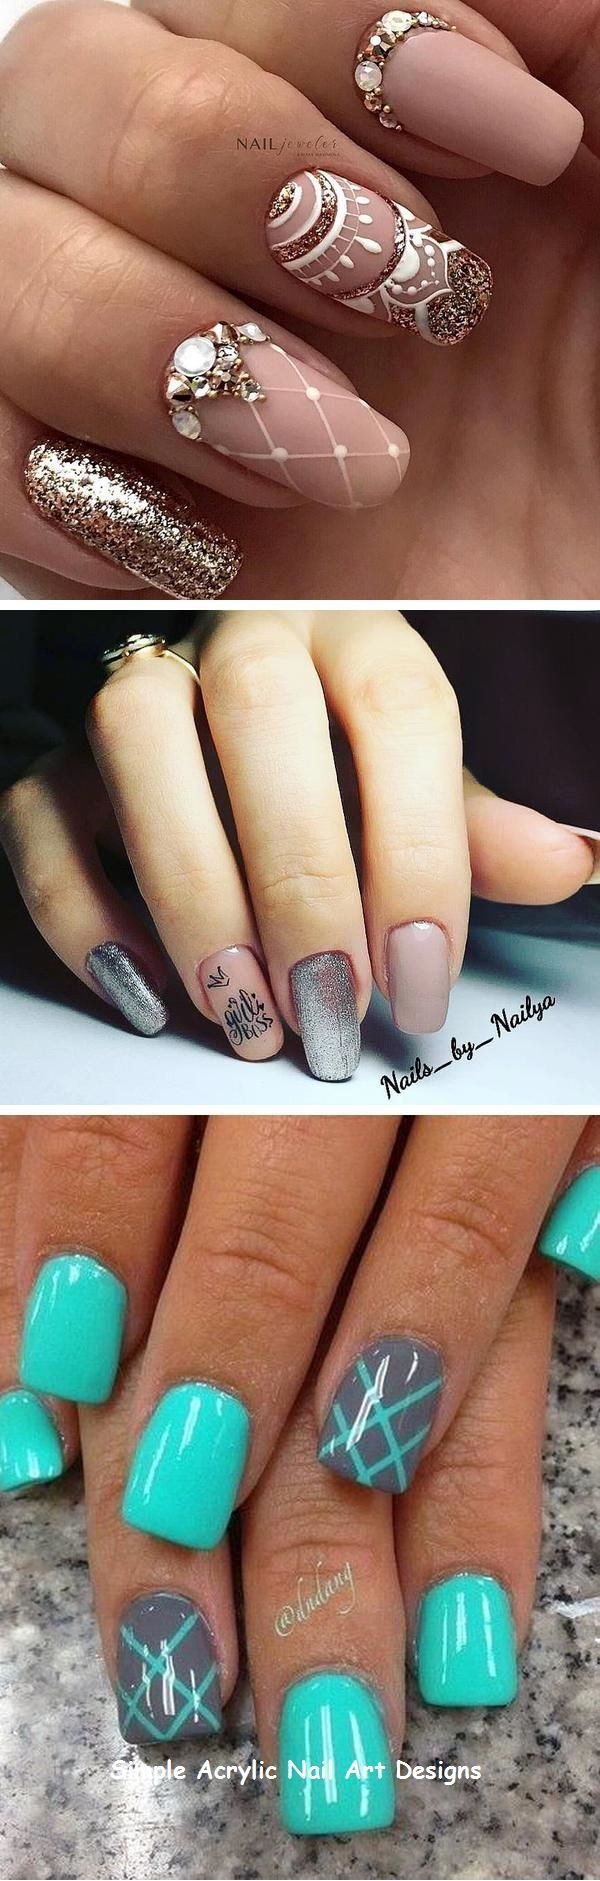 20+ GREAT IDEAS HOW TO MAKE ACRYLIC NAILS BY YOURSELF #acrylicnail